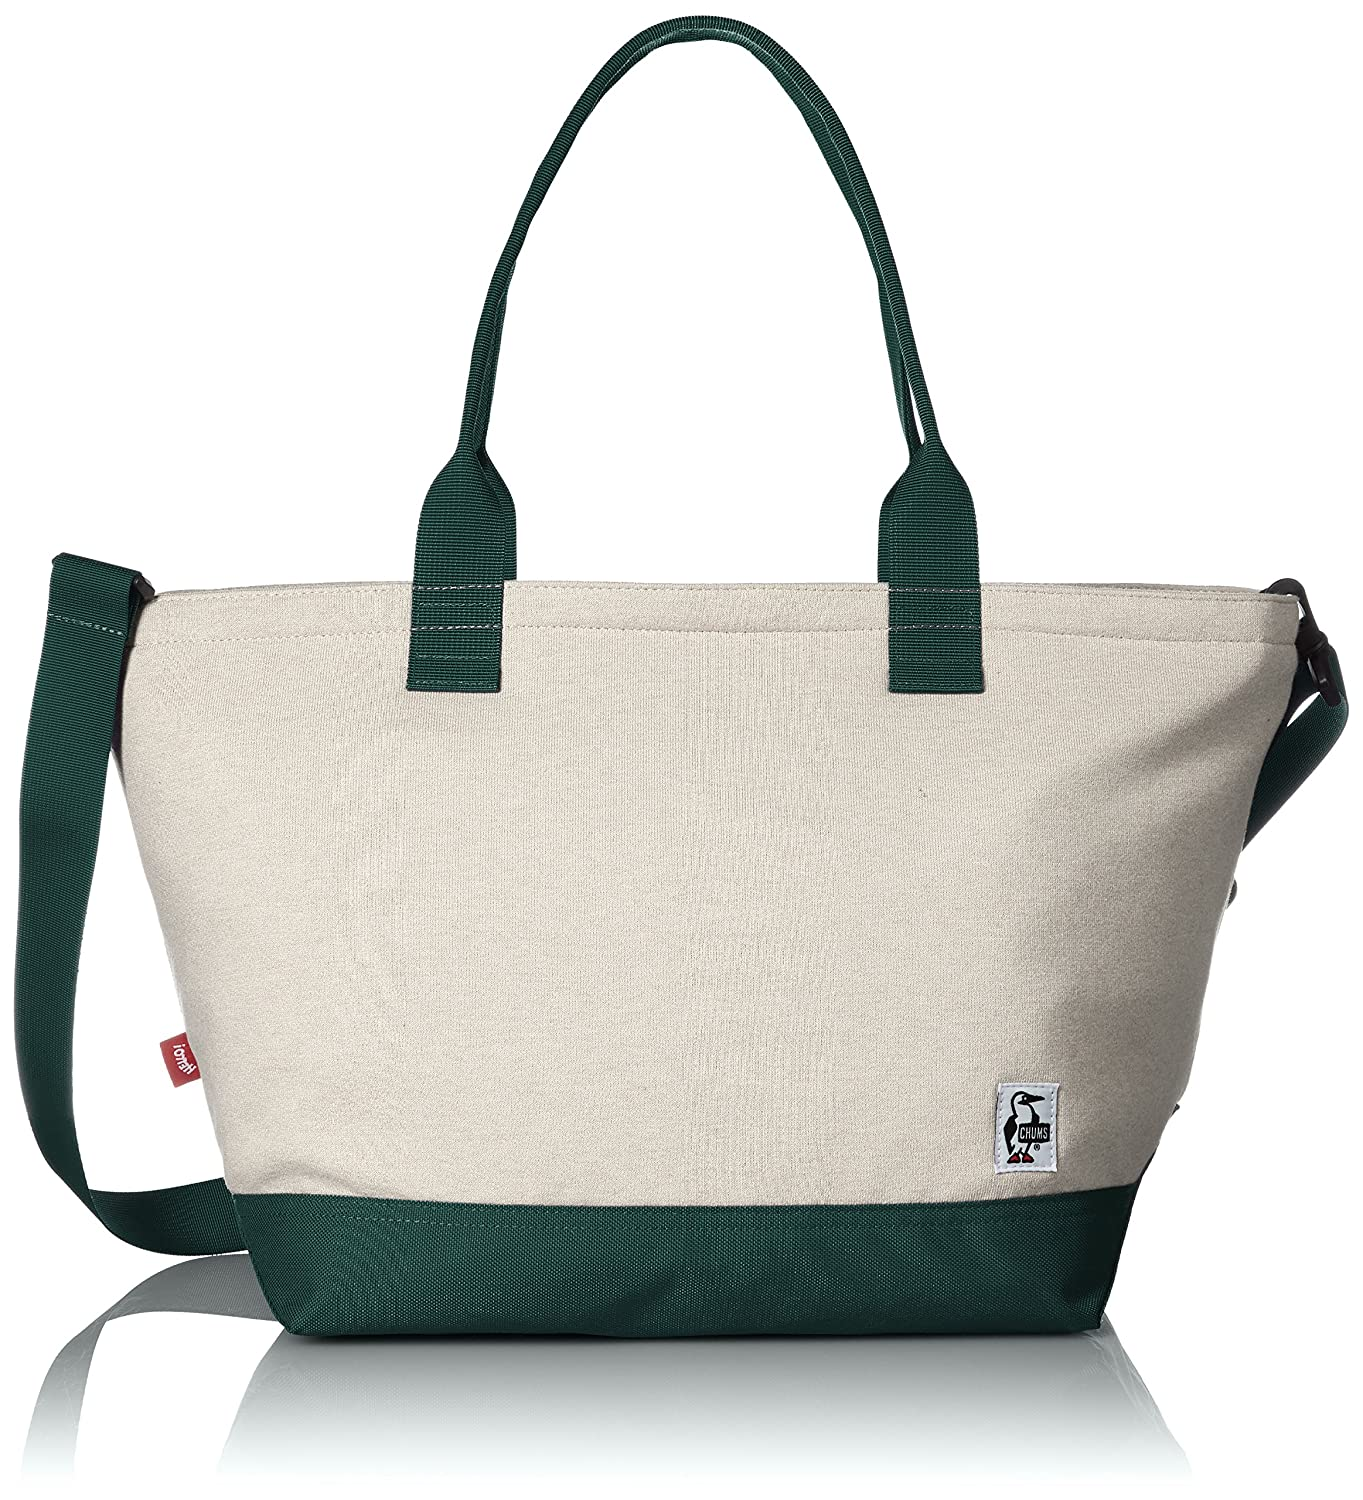 [チャムス] トートバッグ Carry Tote Bag Sweat Nylon CH60-2118-A046-00 B01MSDFXX7 H-Natural/Ivy H-Natural/Ivy